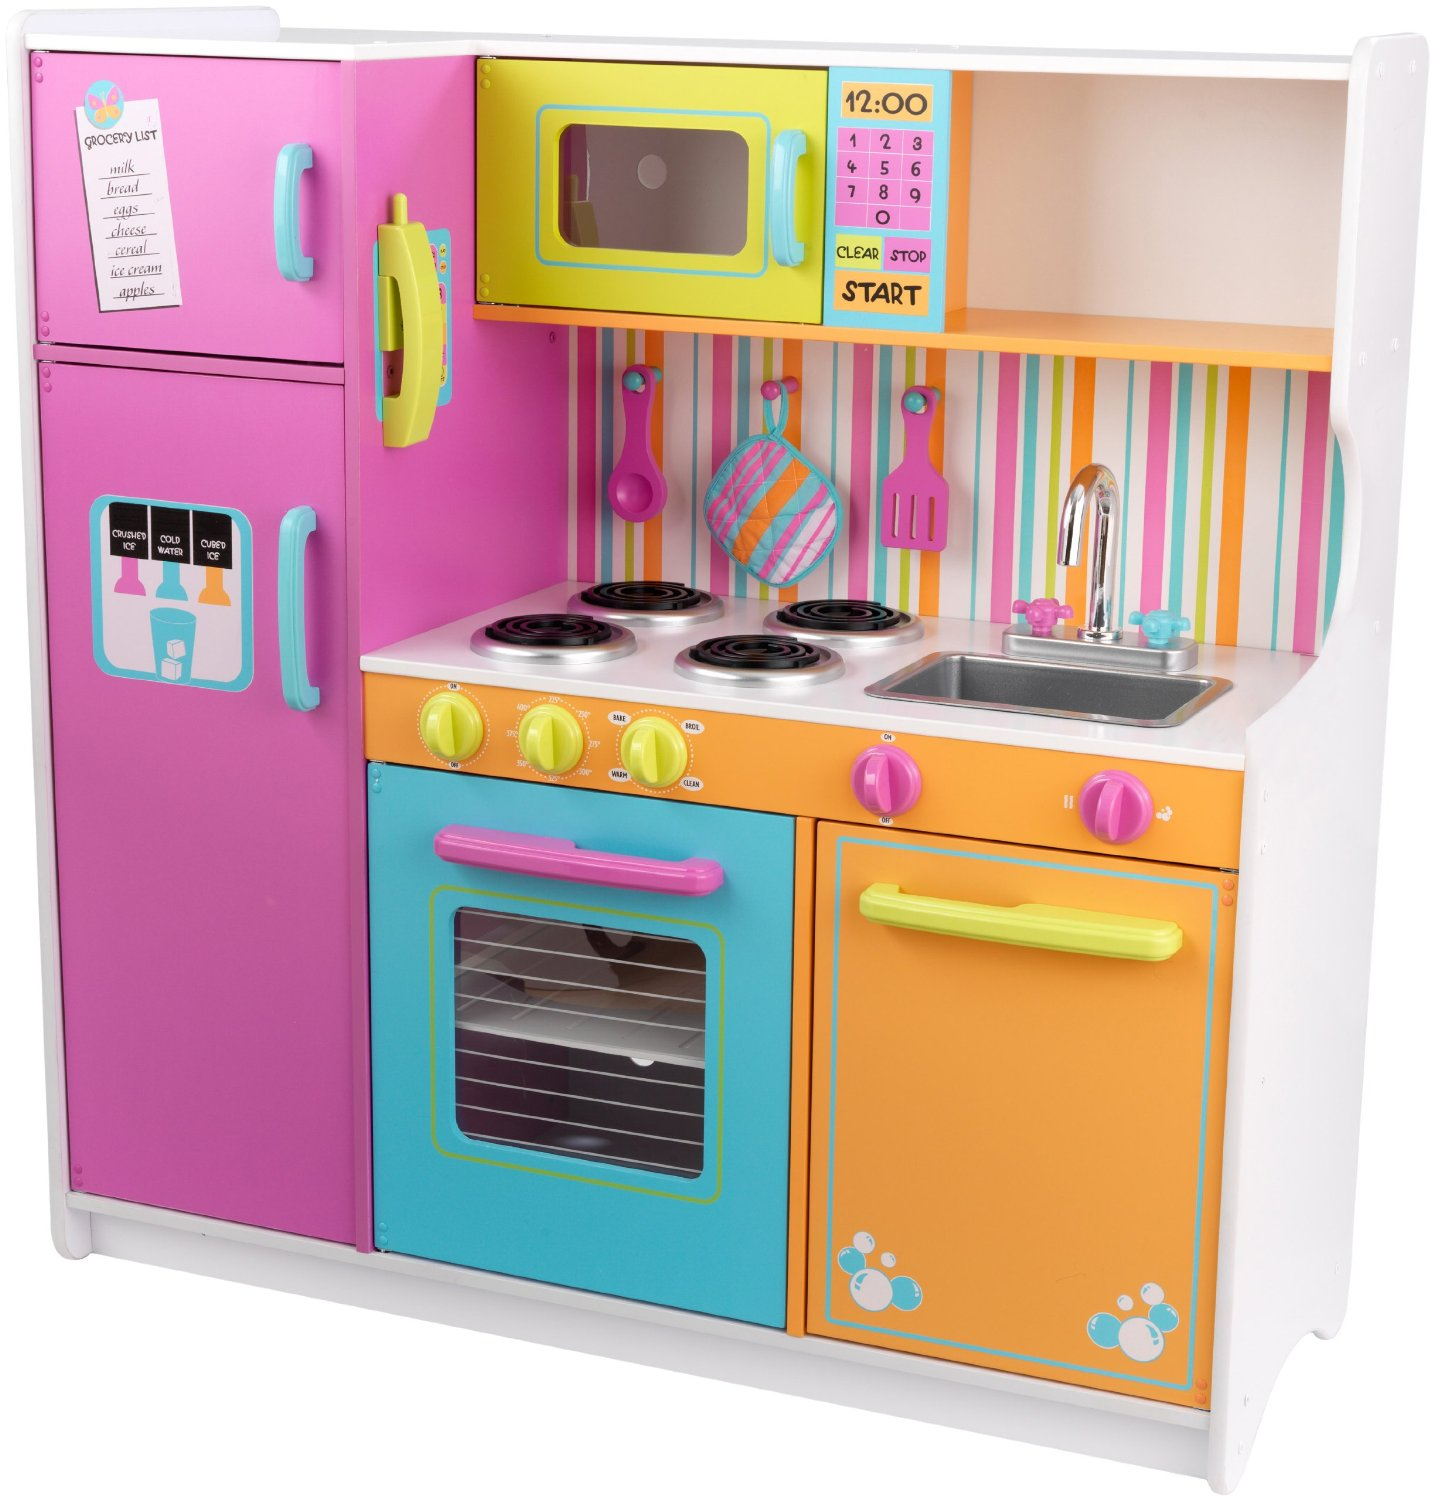 Kitchen set toys classy baby gear for Toy kitchen set